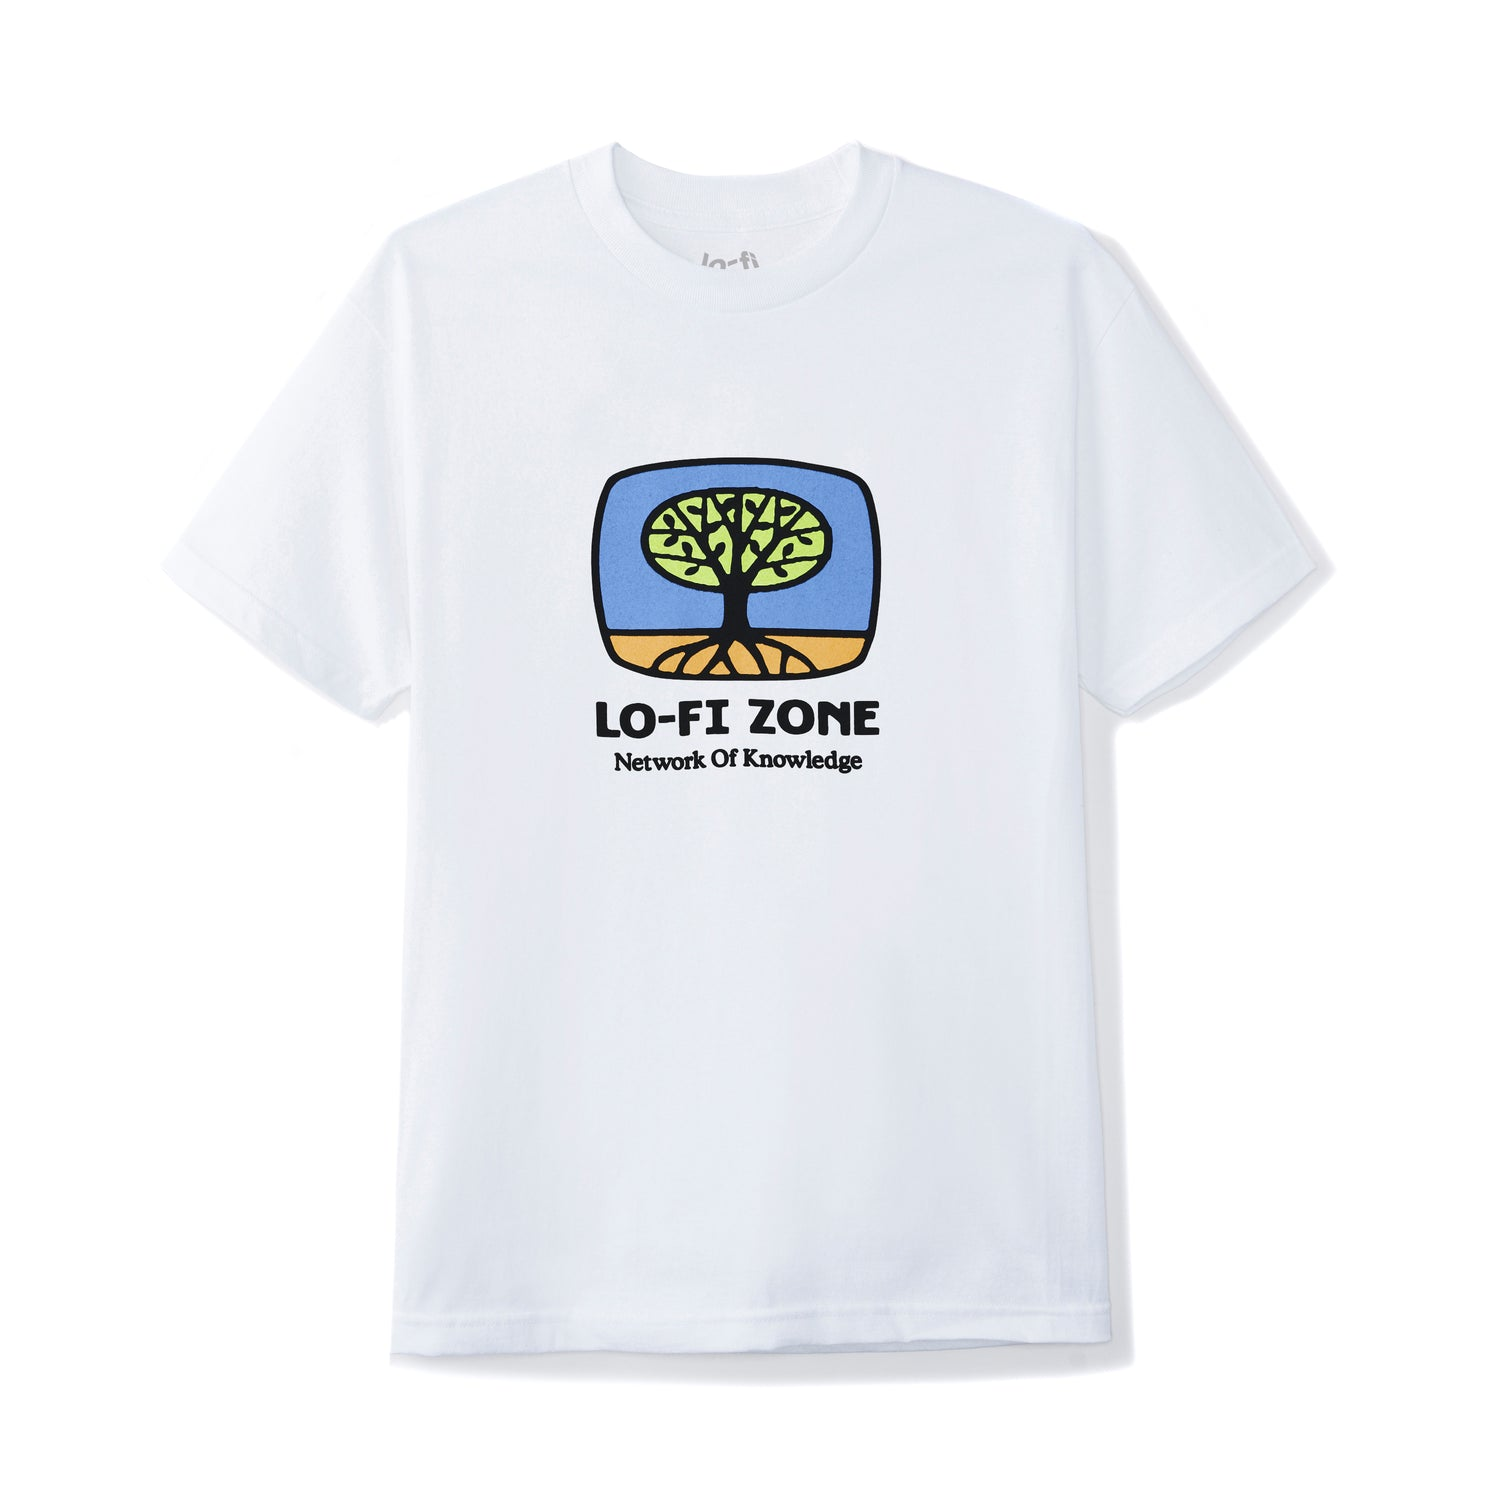 Network of Knowledge Tee, White